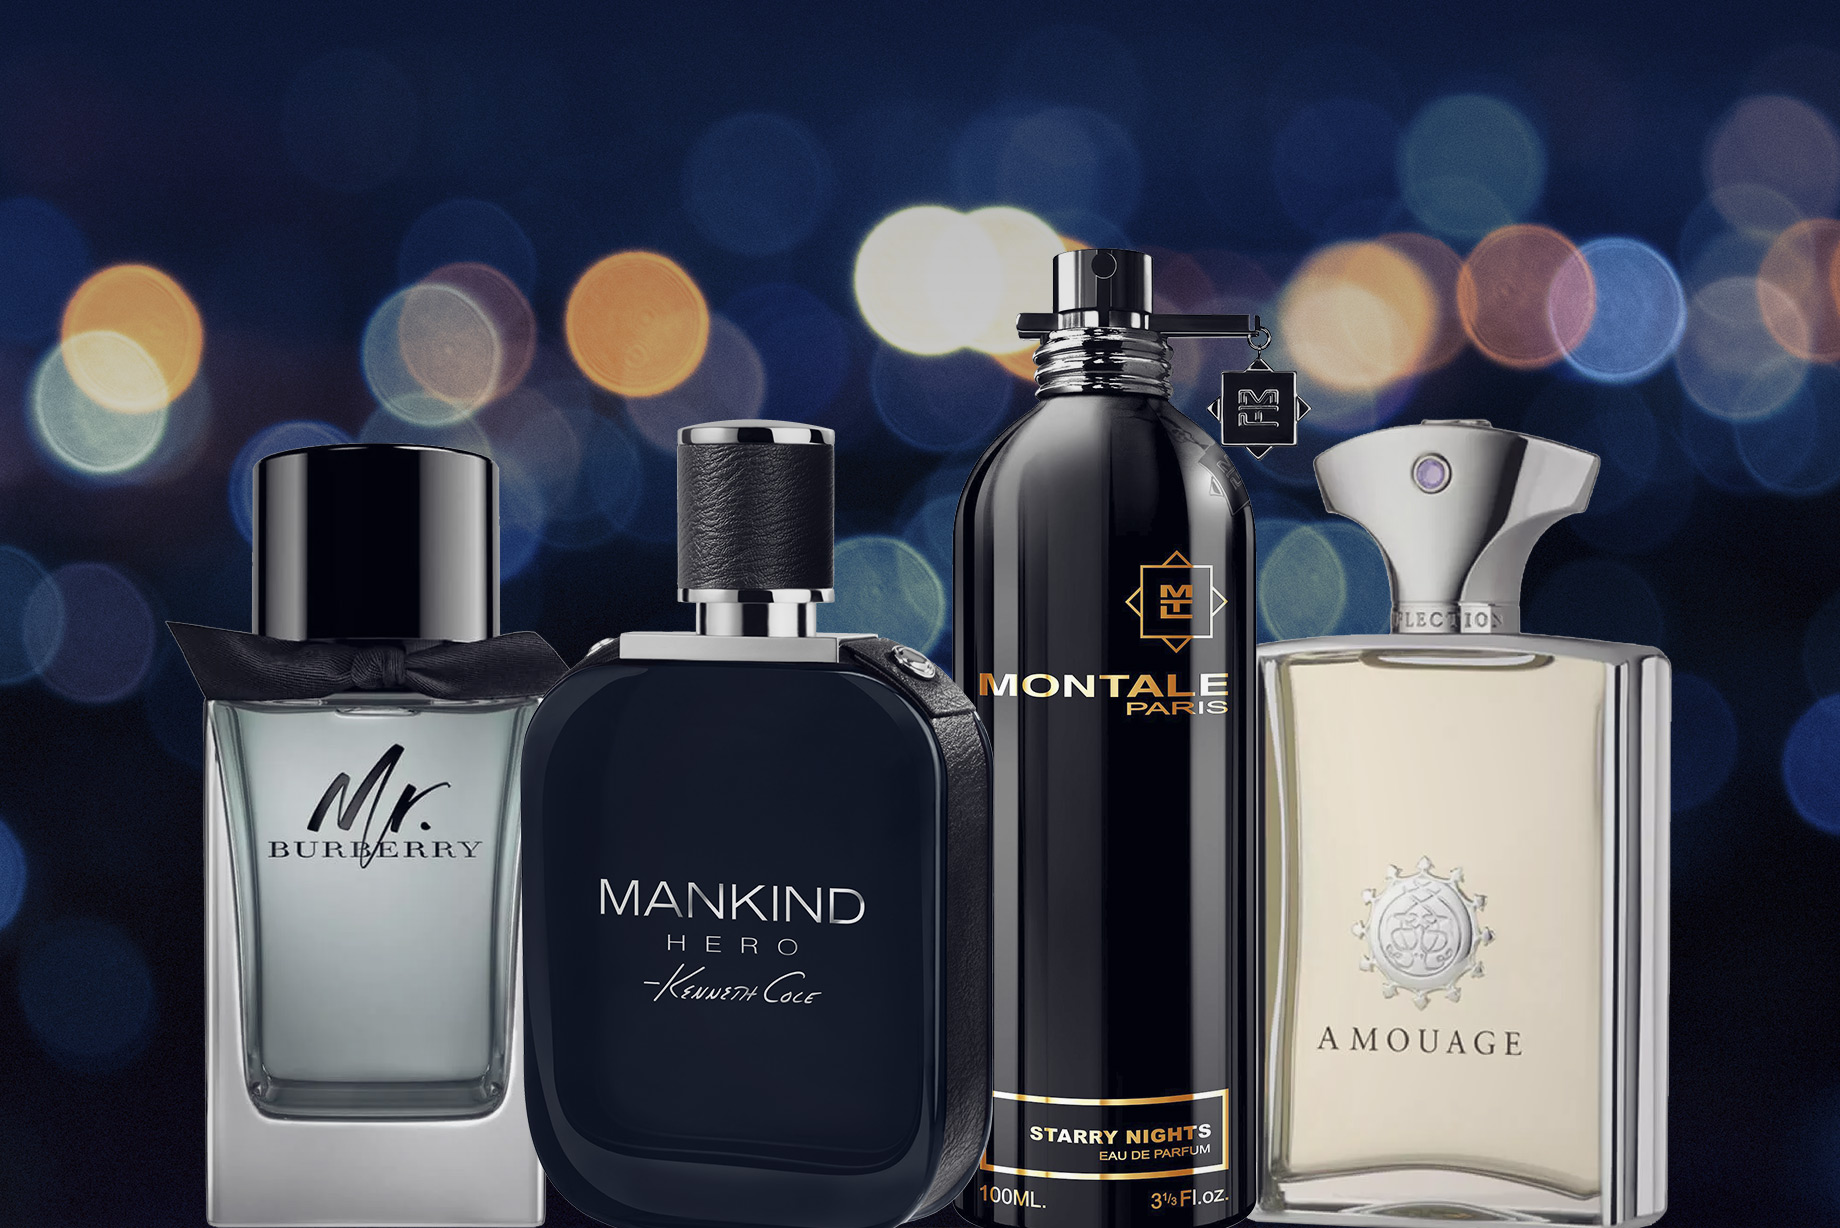 4 colognes to help you smell your best at date nights